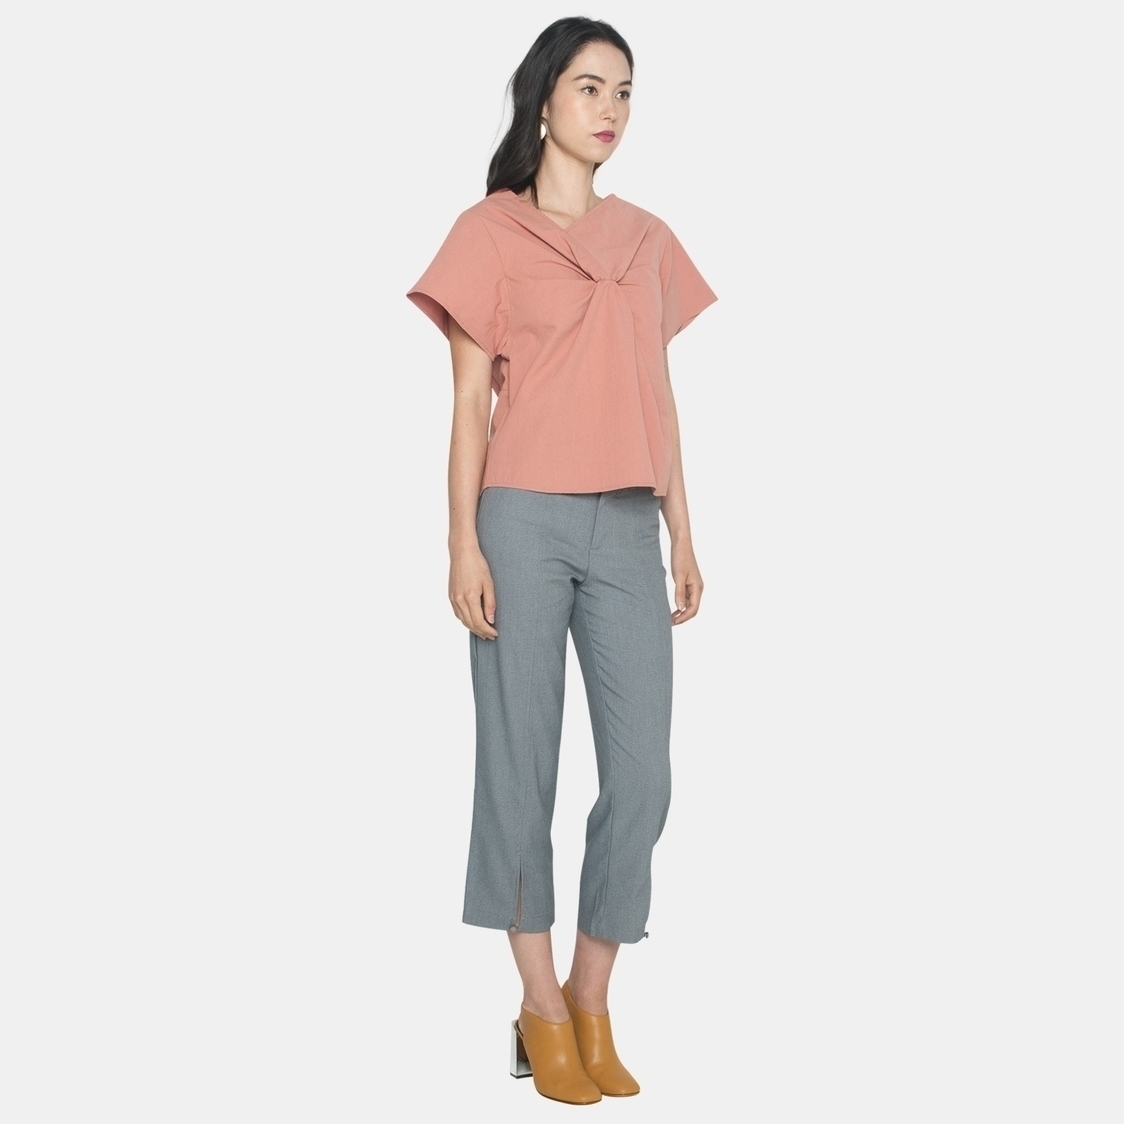 Ellysage Front Knot Shirt in Blush